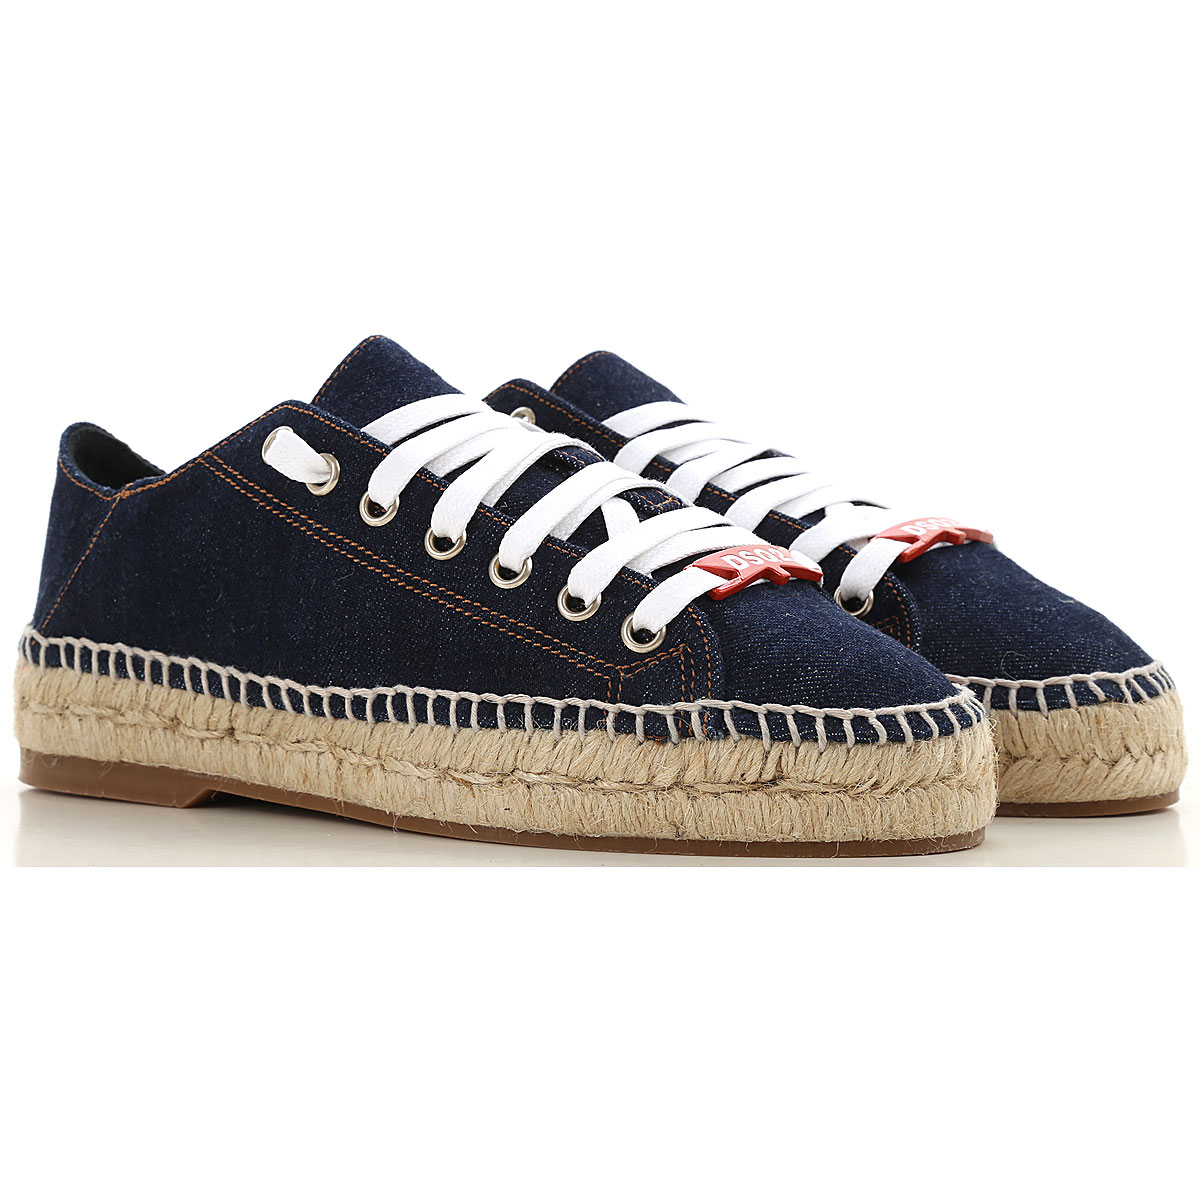 Dsquared2 Sneakers for Women in Outlet Blue Denim USA - GOOFASH